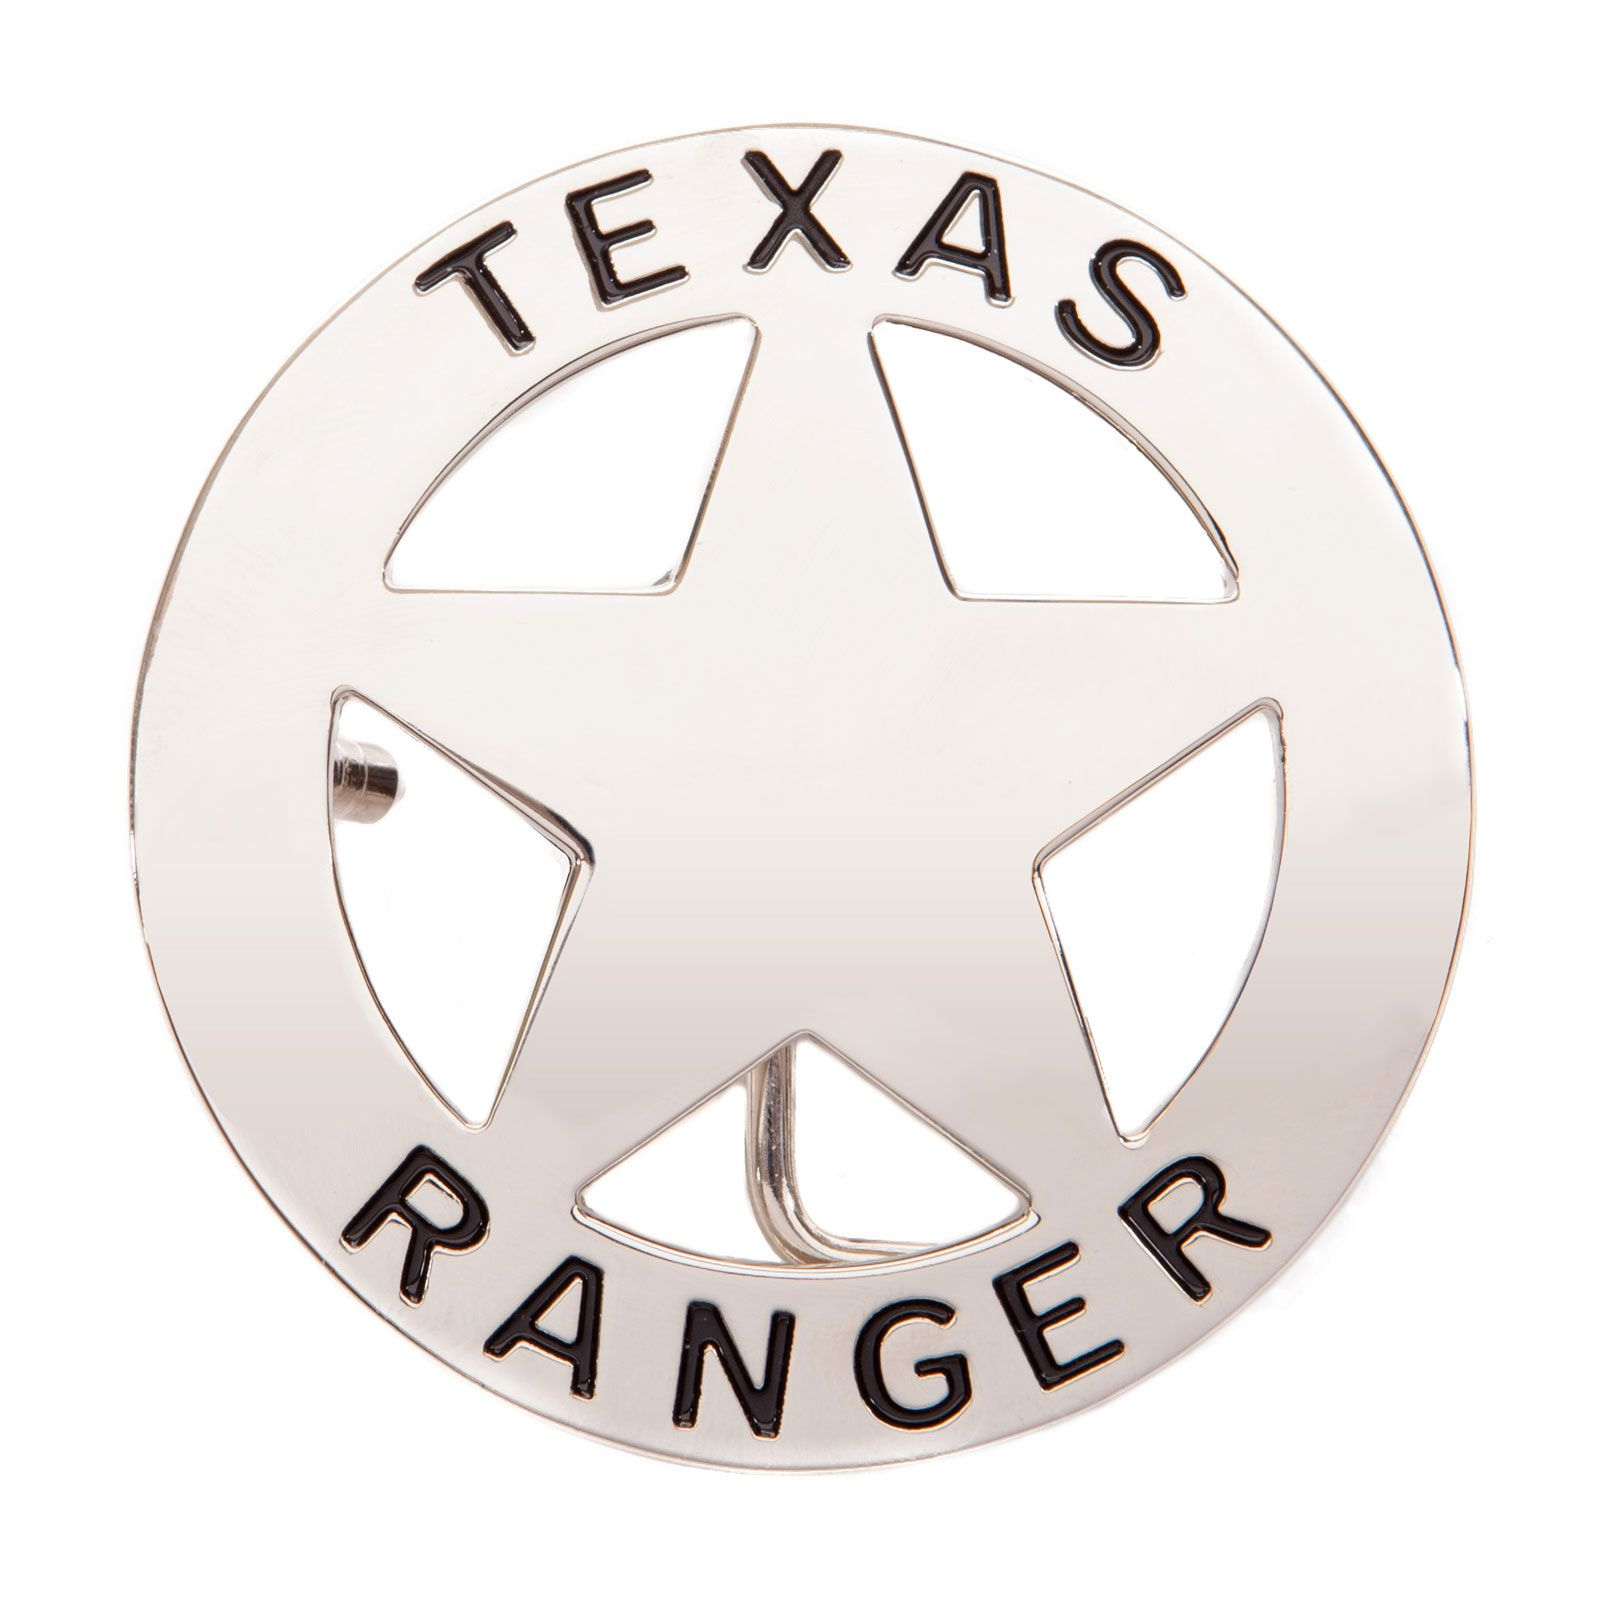 Silver Texas Ranger Belt Buckle